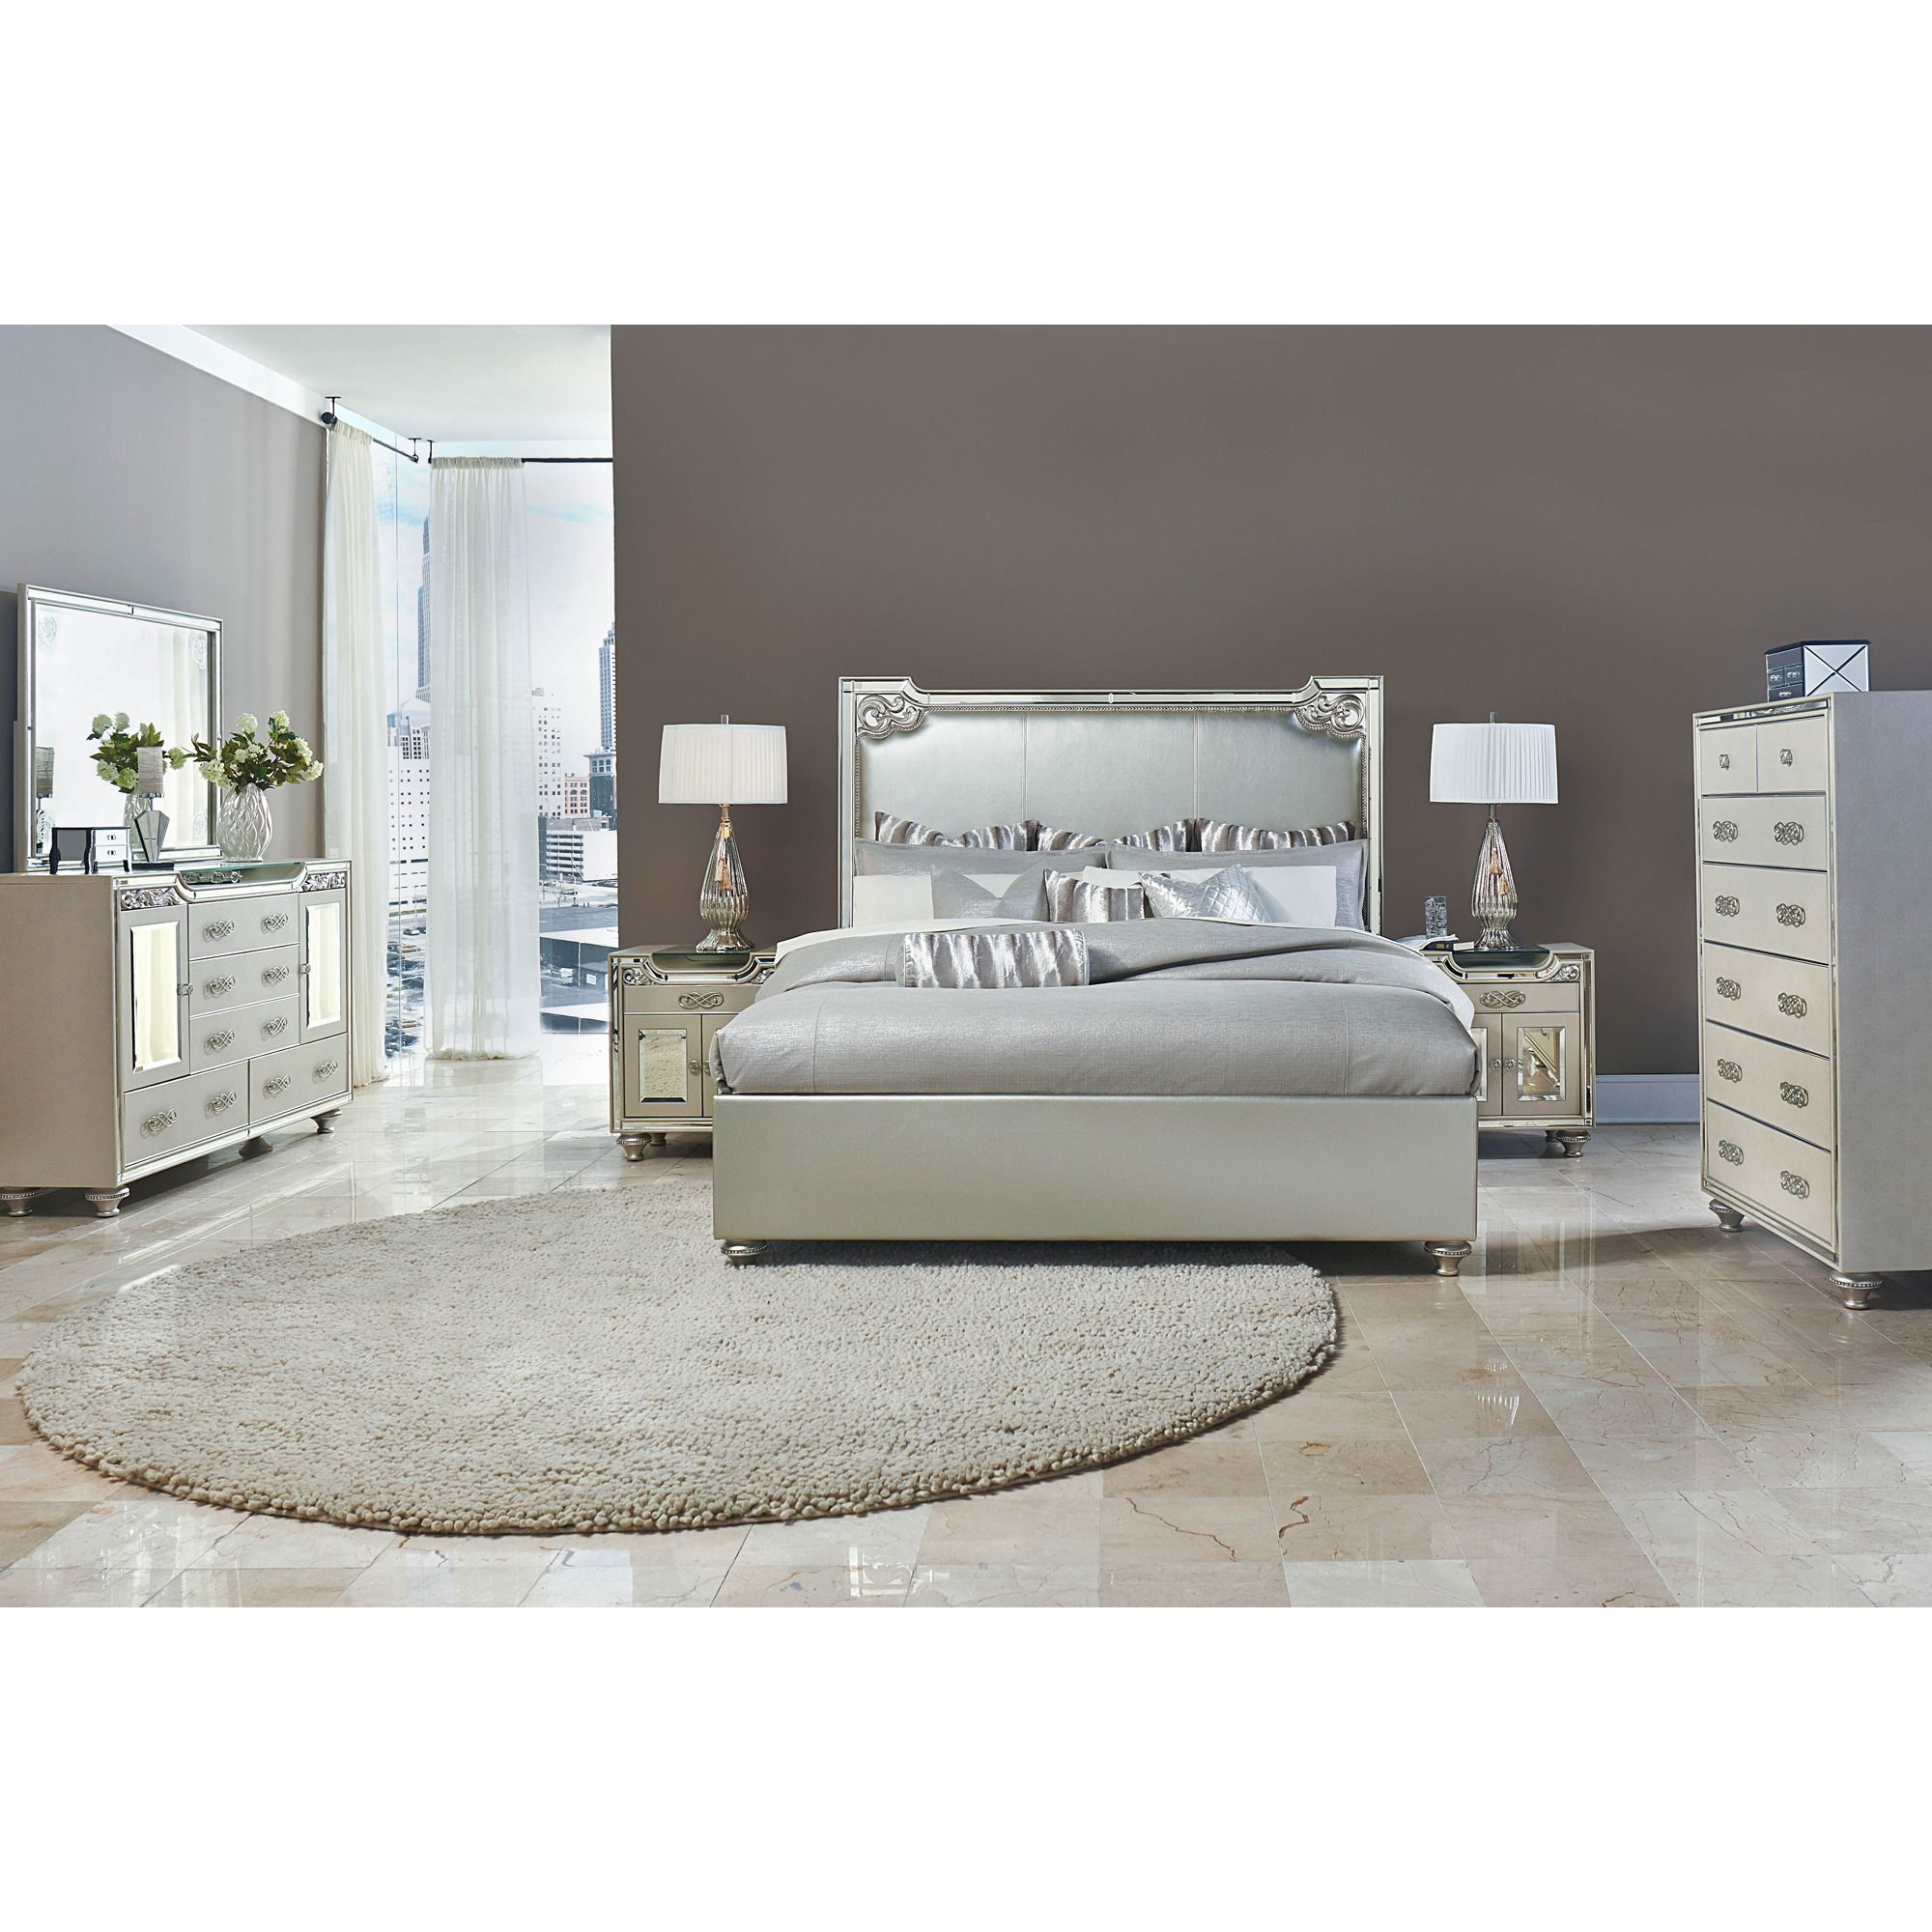 Bel Air Park Glam Leather Bedroom Set By AICO